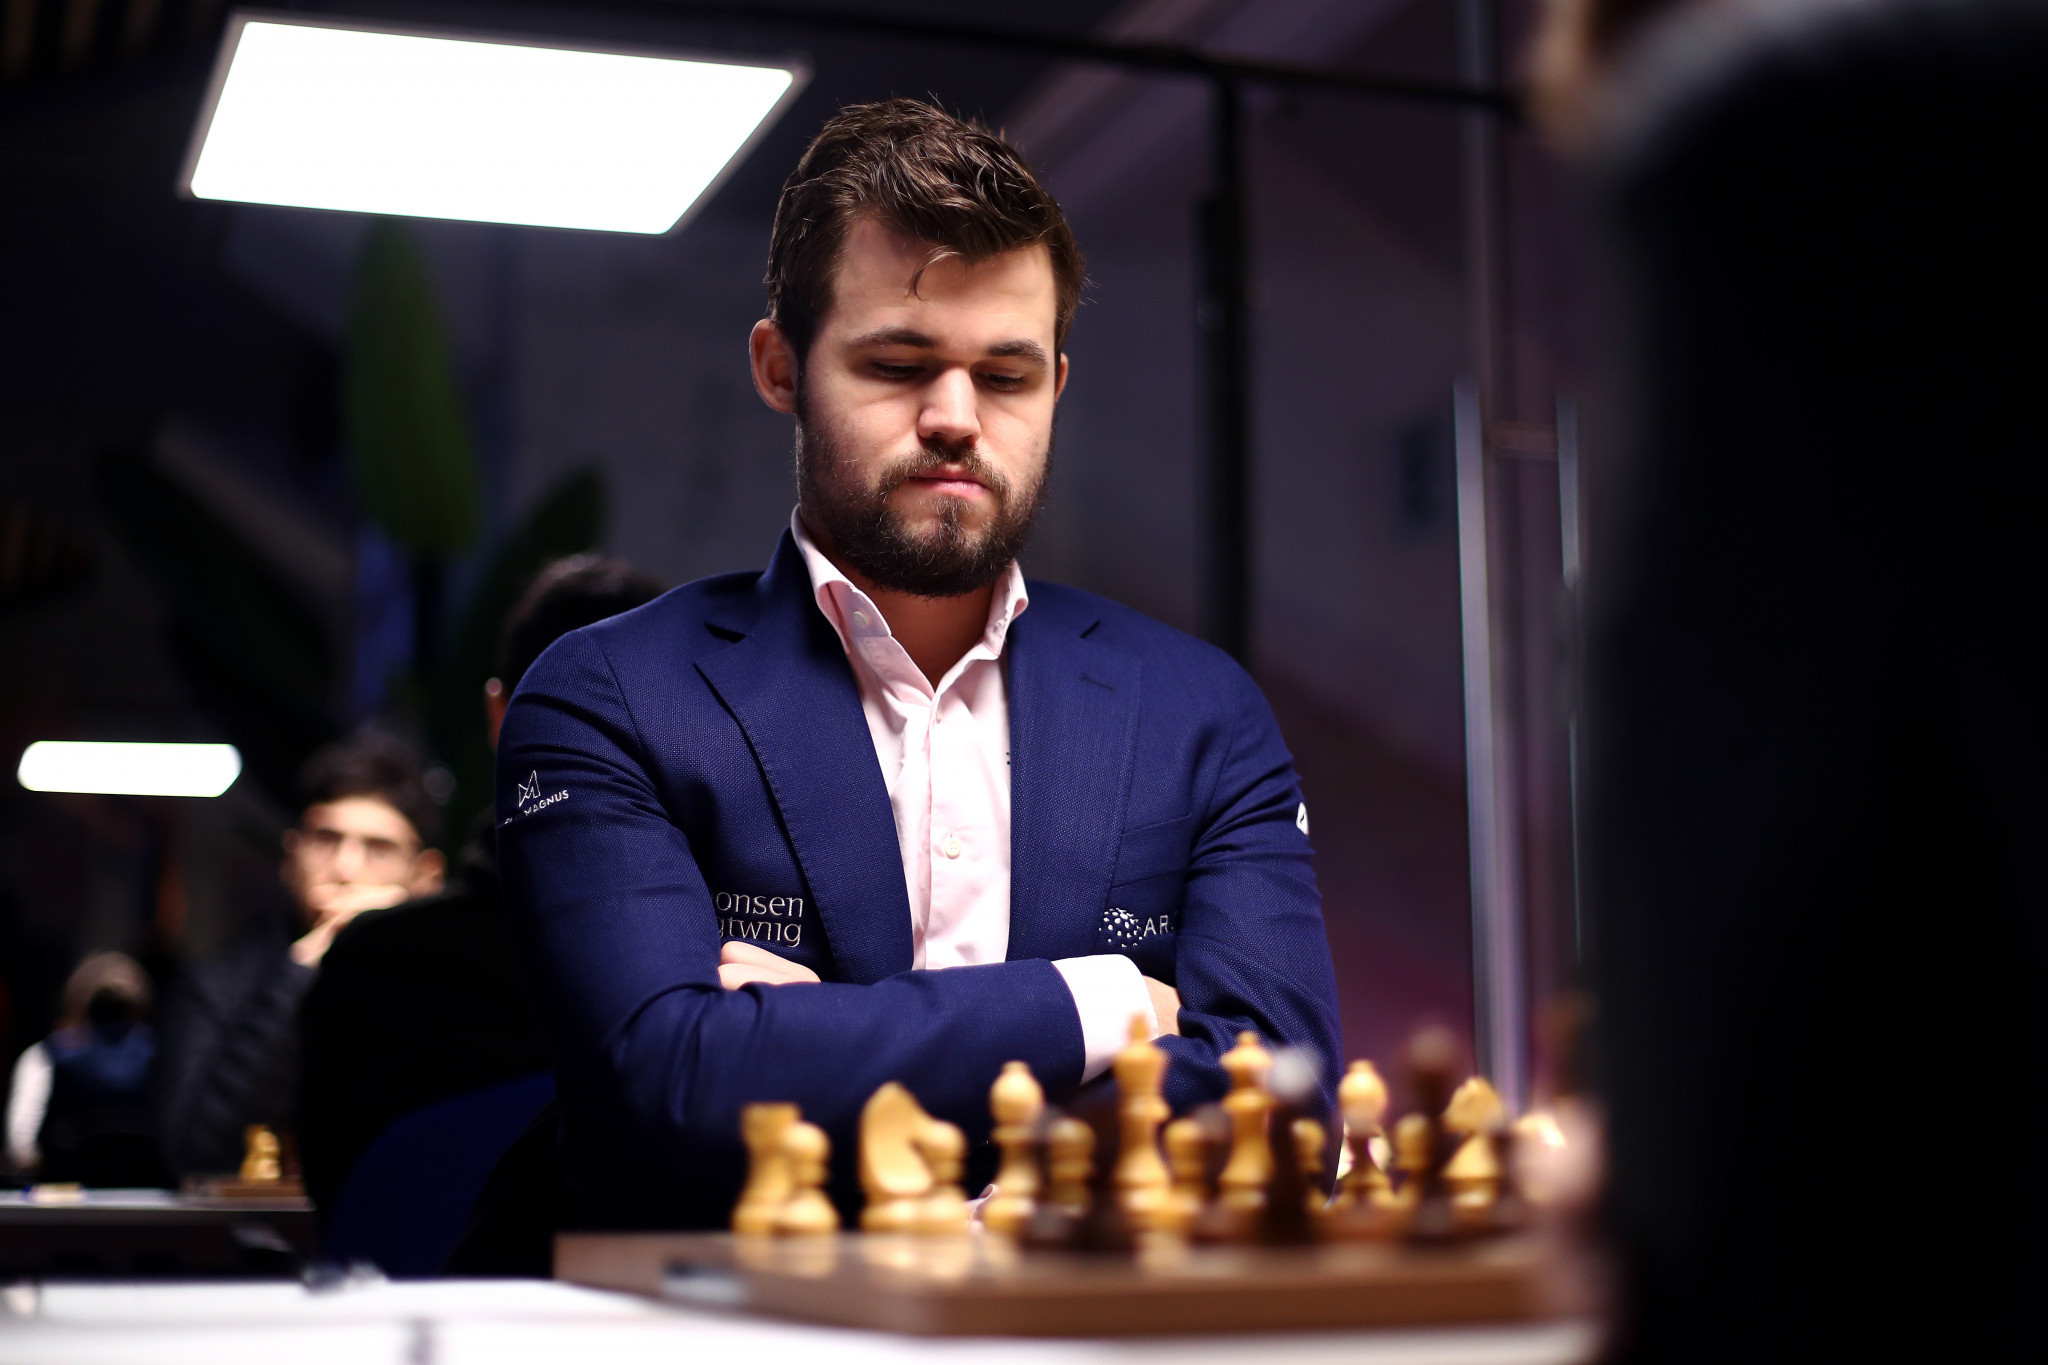 Martinović to face world number one Carlsen in second round of Chess World Cup